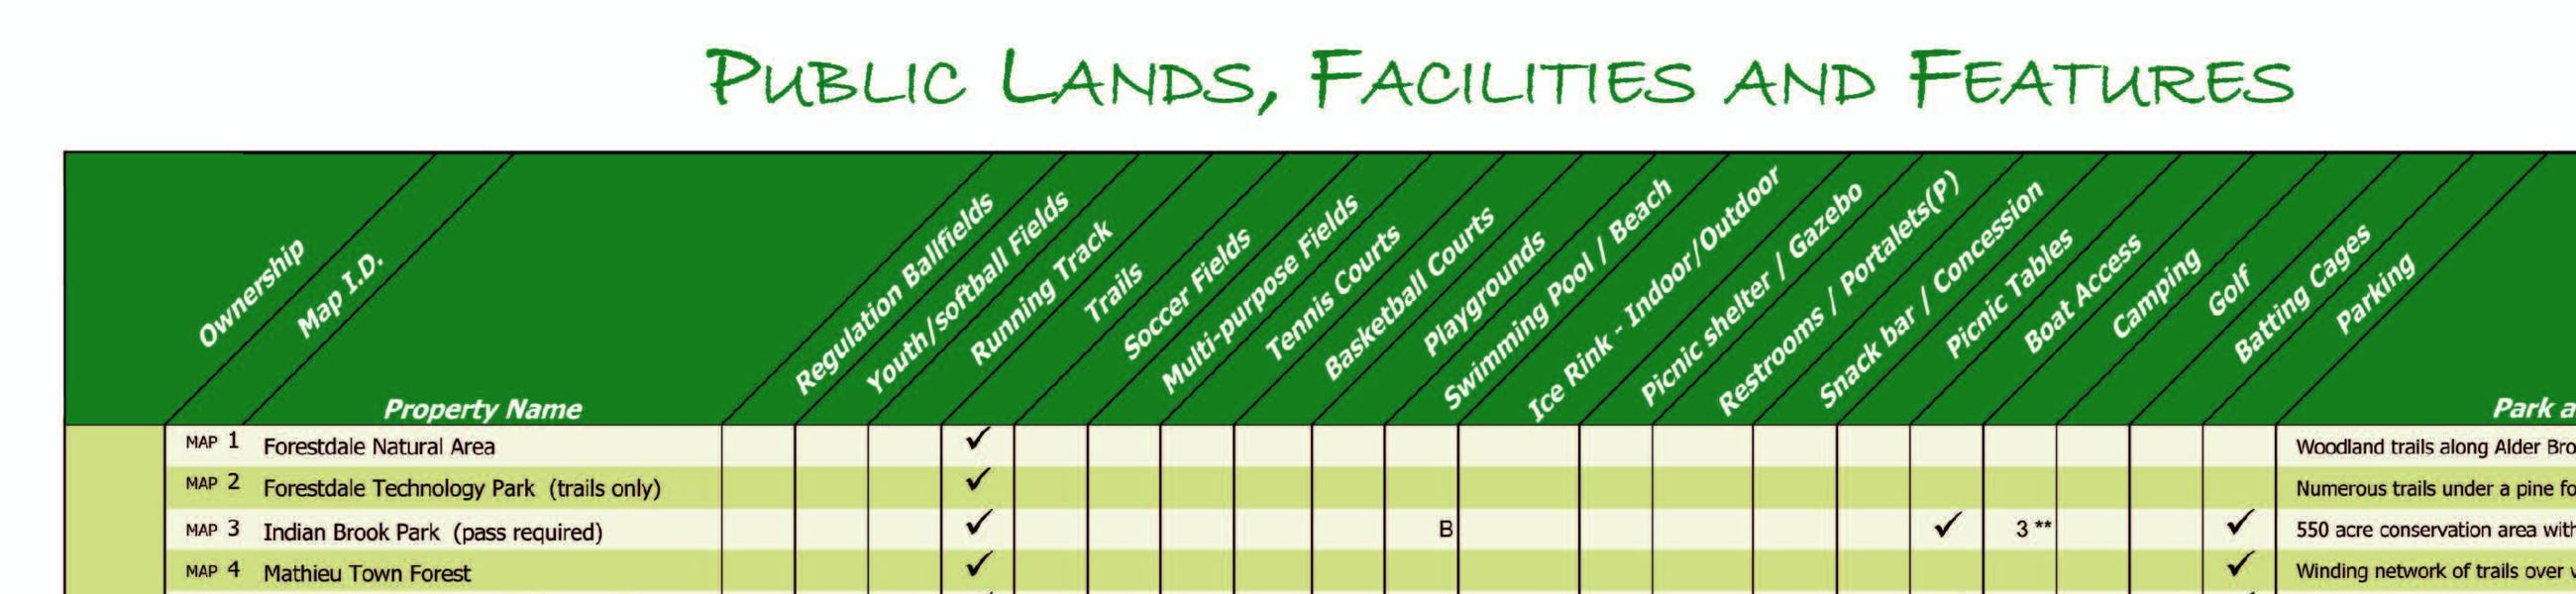 Graph showing the towns public lands, facilities, and features of each